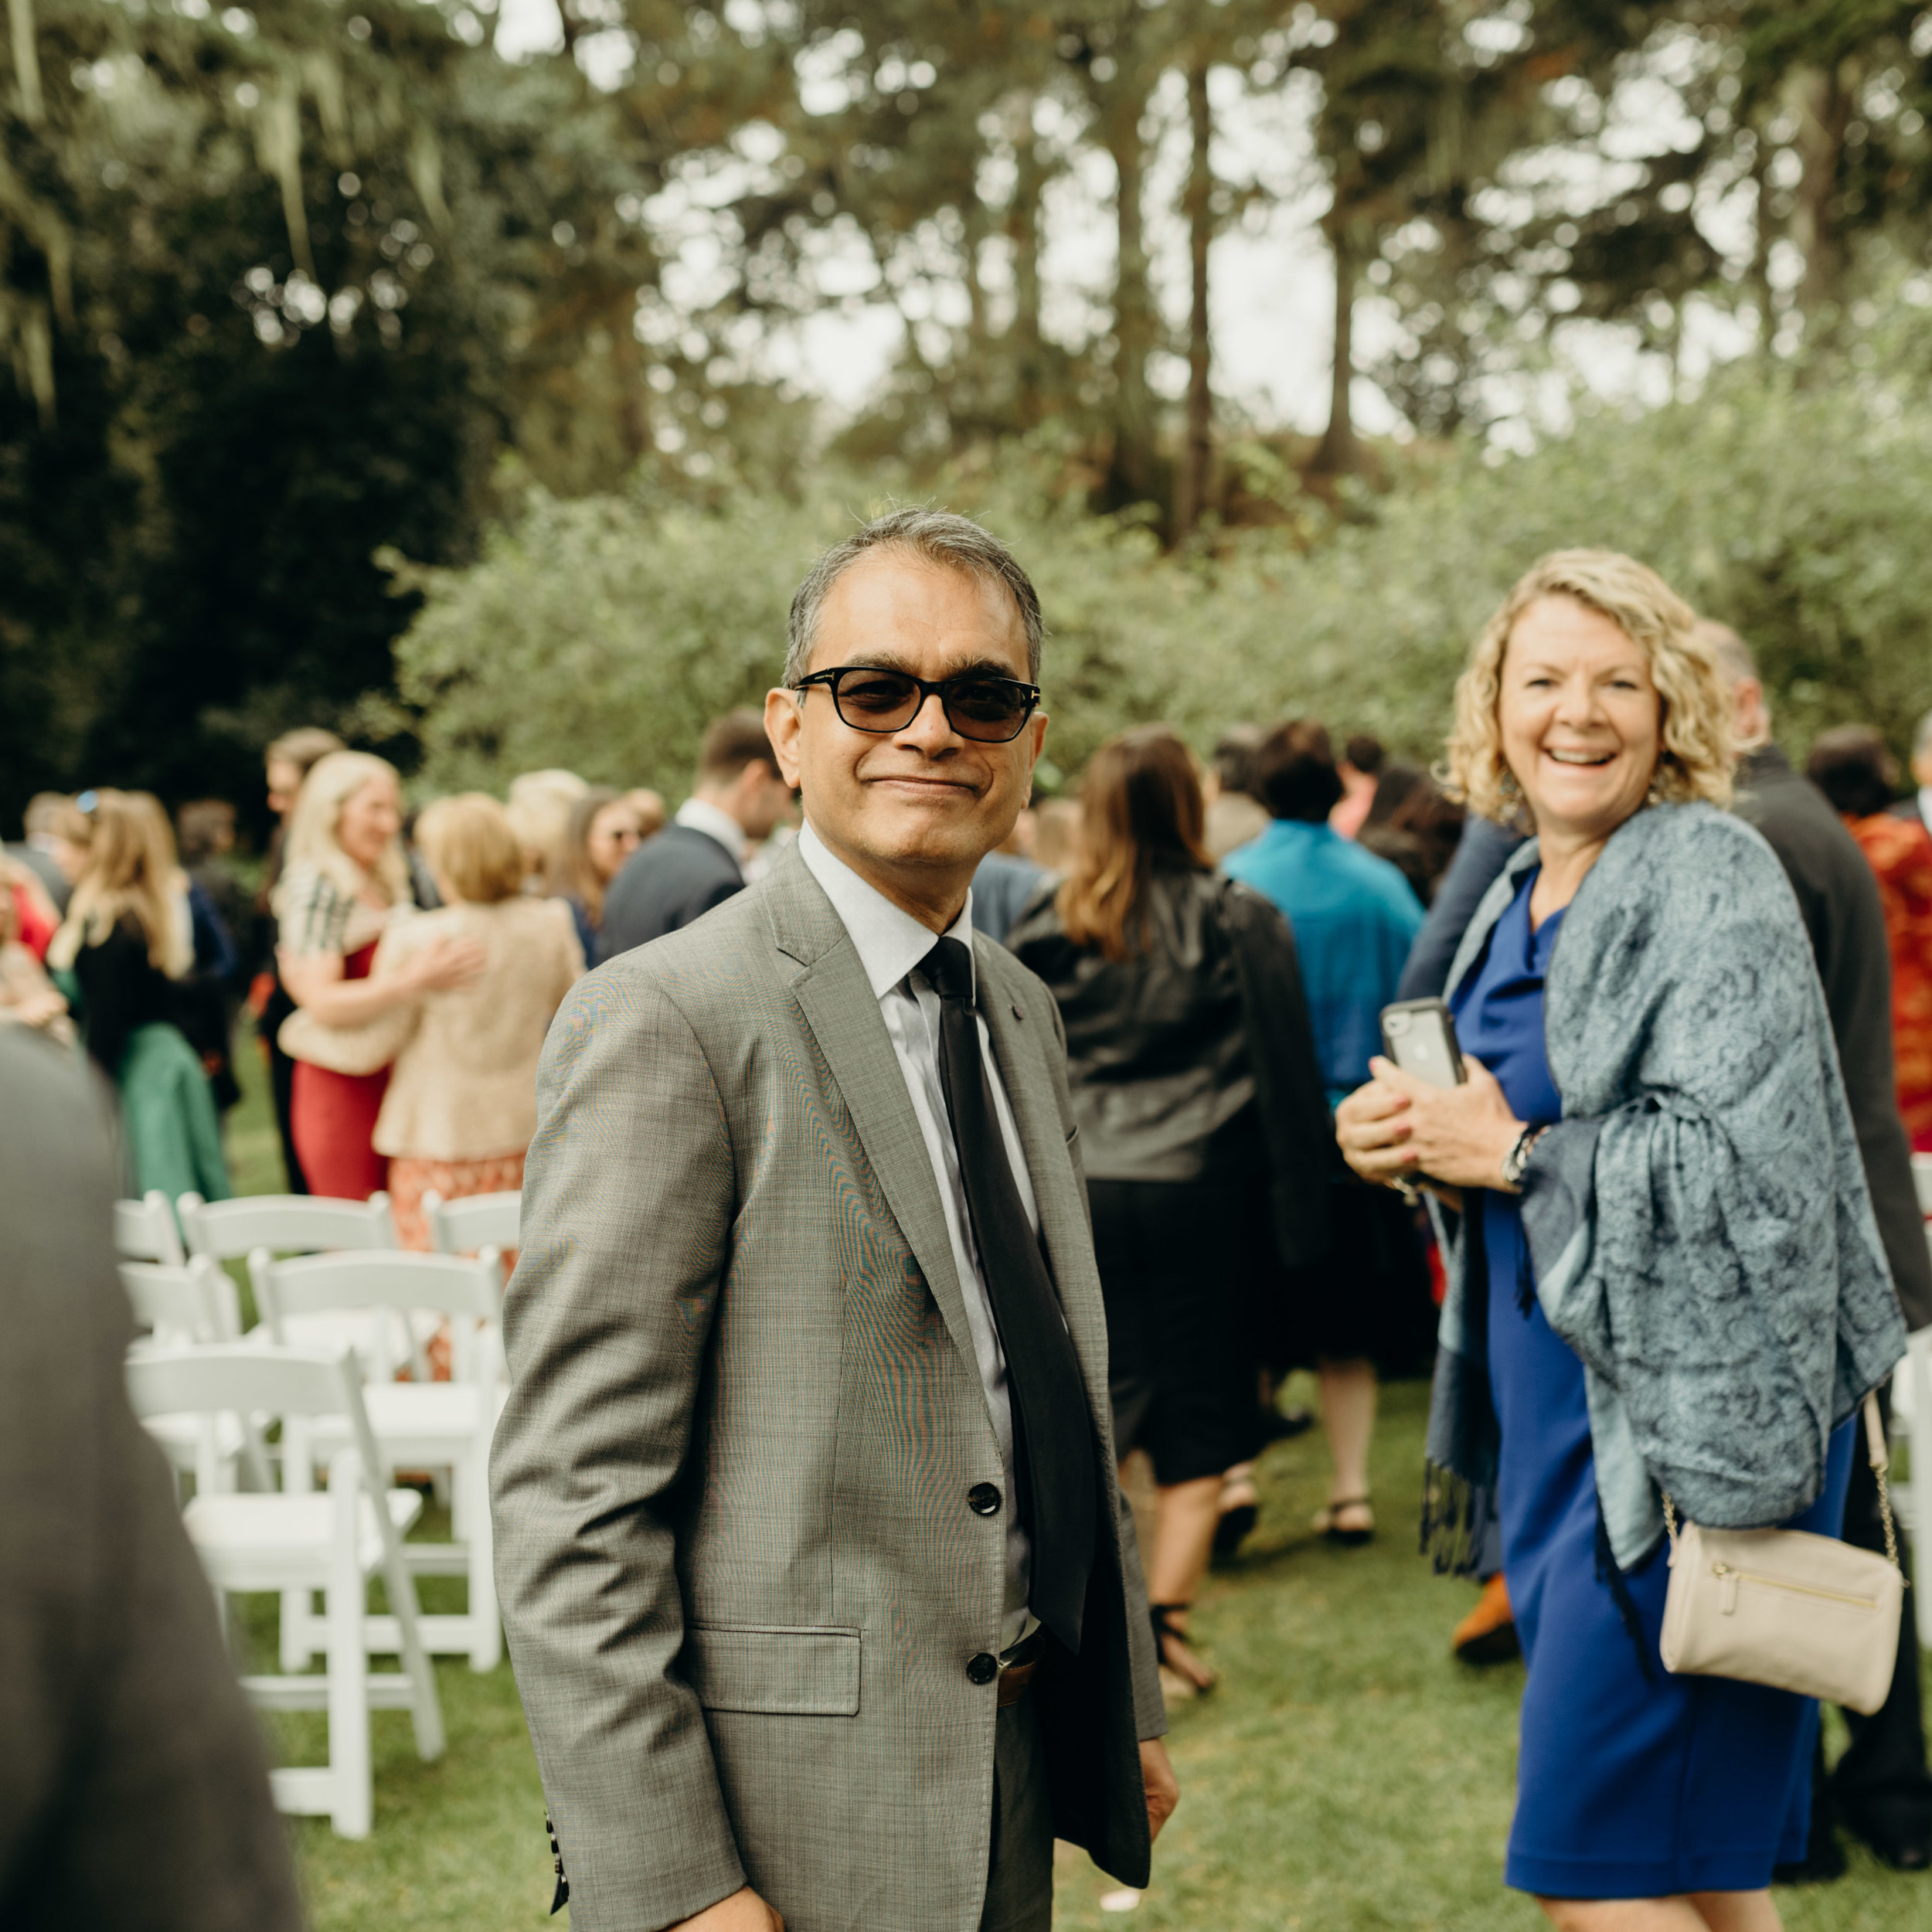 wedding guests at golden gate park's shakespeare garden wedding in san francisco. photo by amira maxwell